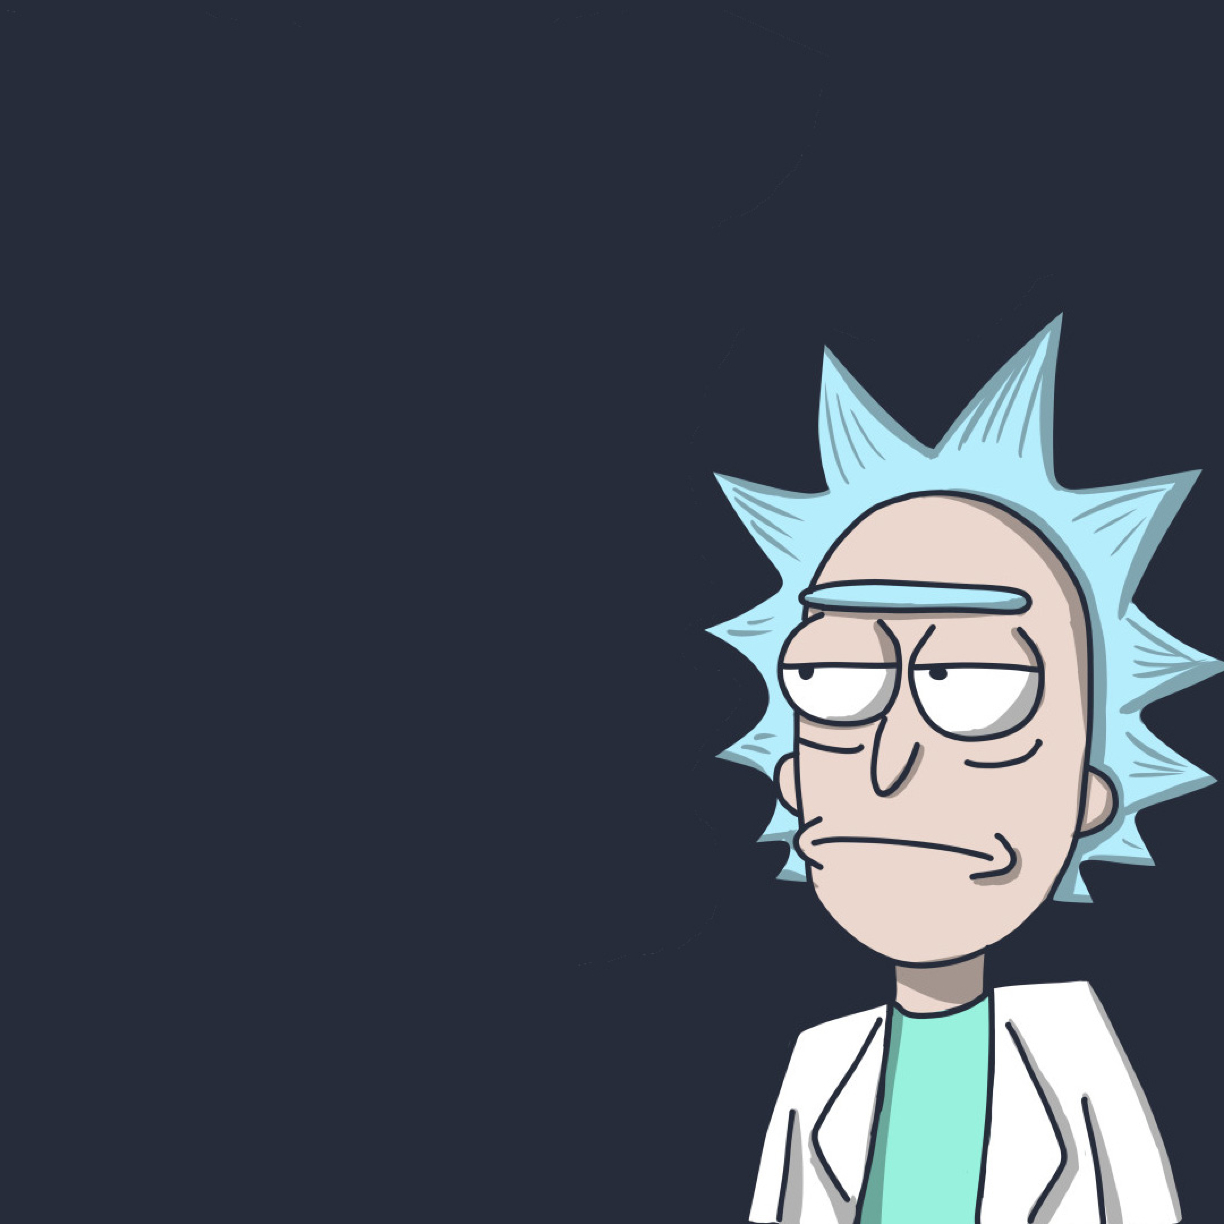 JJJRi depression rick and morty